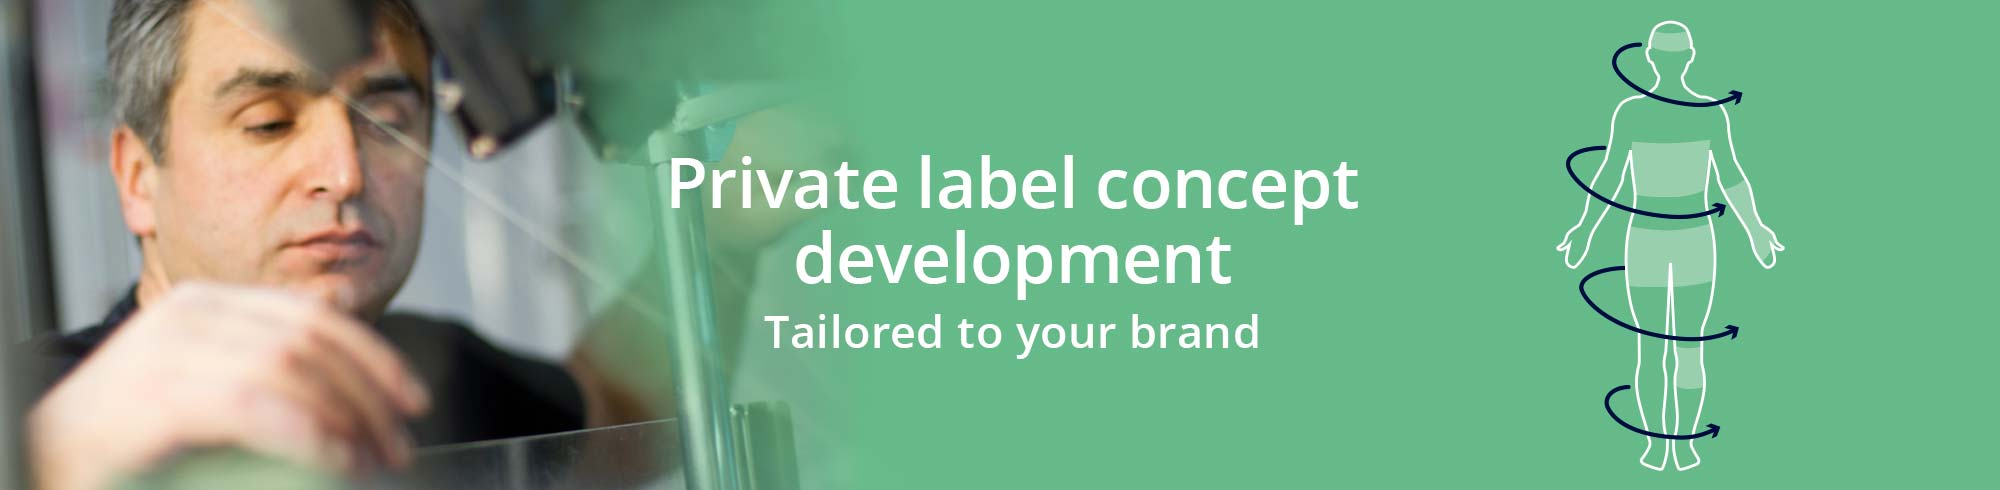 Why private labels choose Tytex for medical textiles and garments